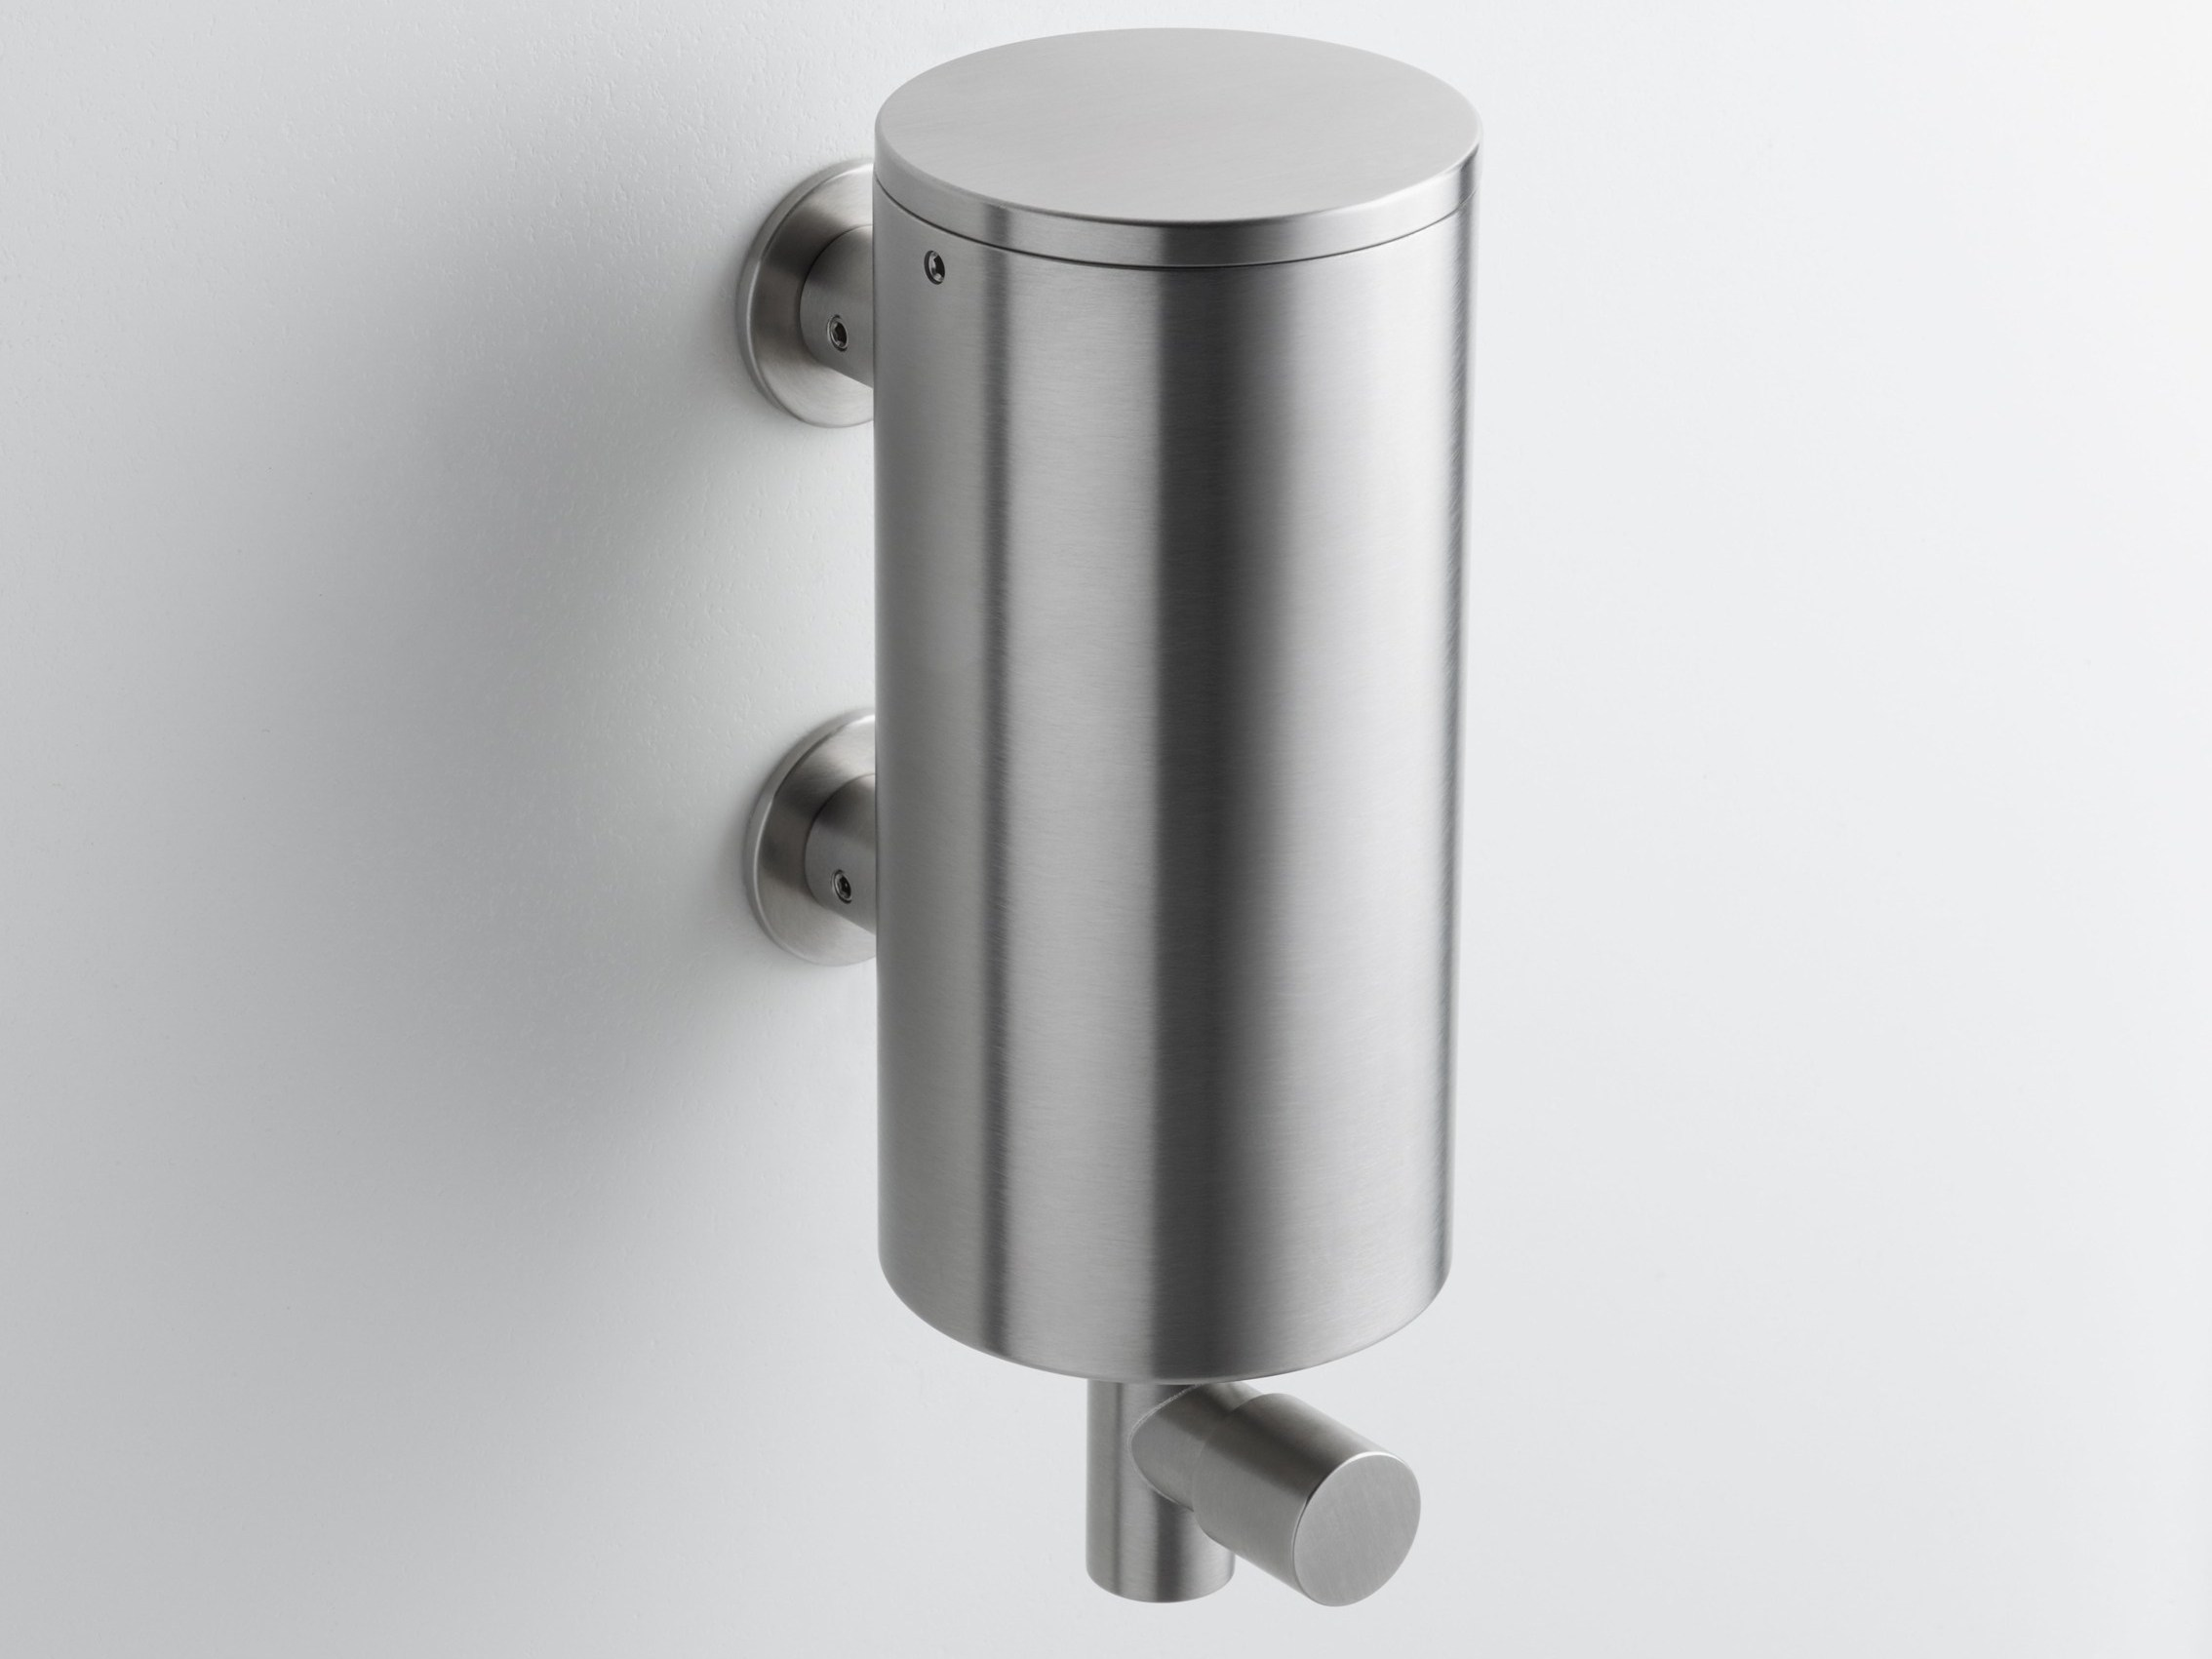 Liquid soap dispensers Bathroom accessories